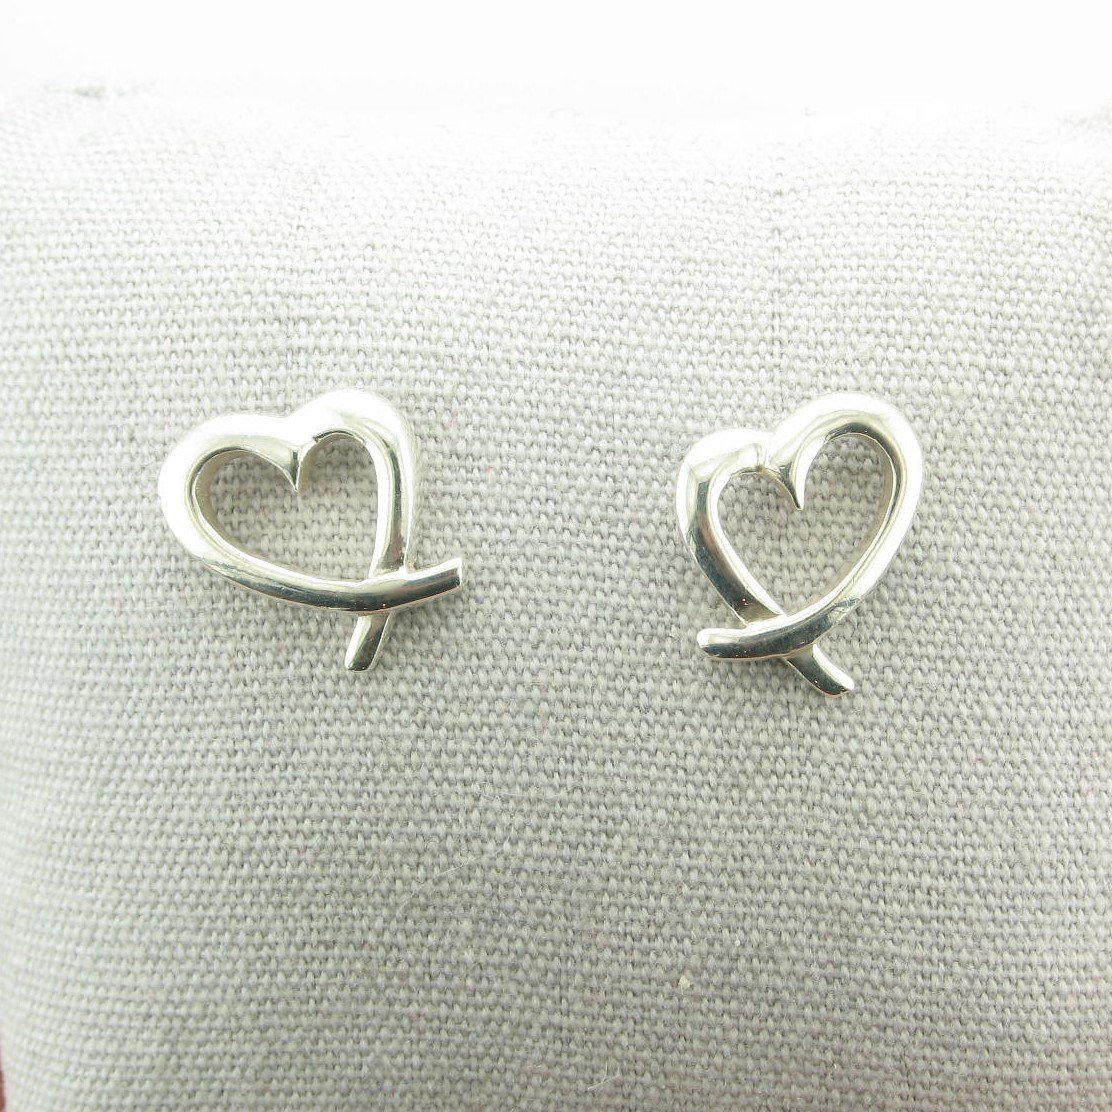 Freeform Heart Earrings set in Sterling Silver